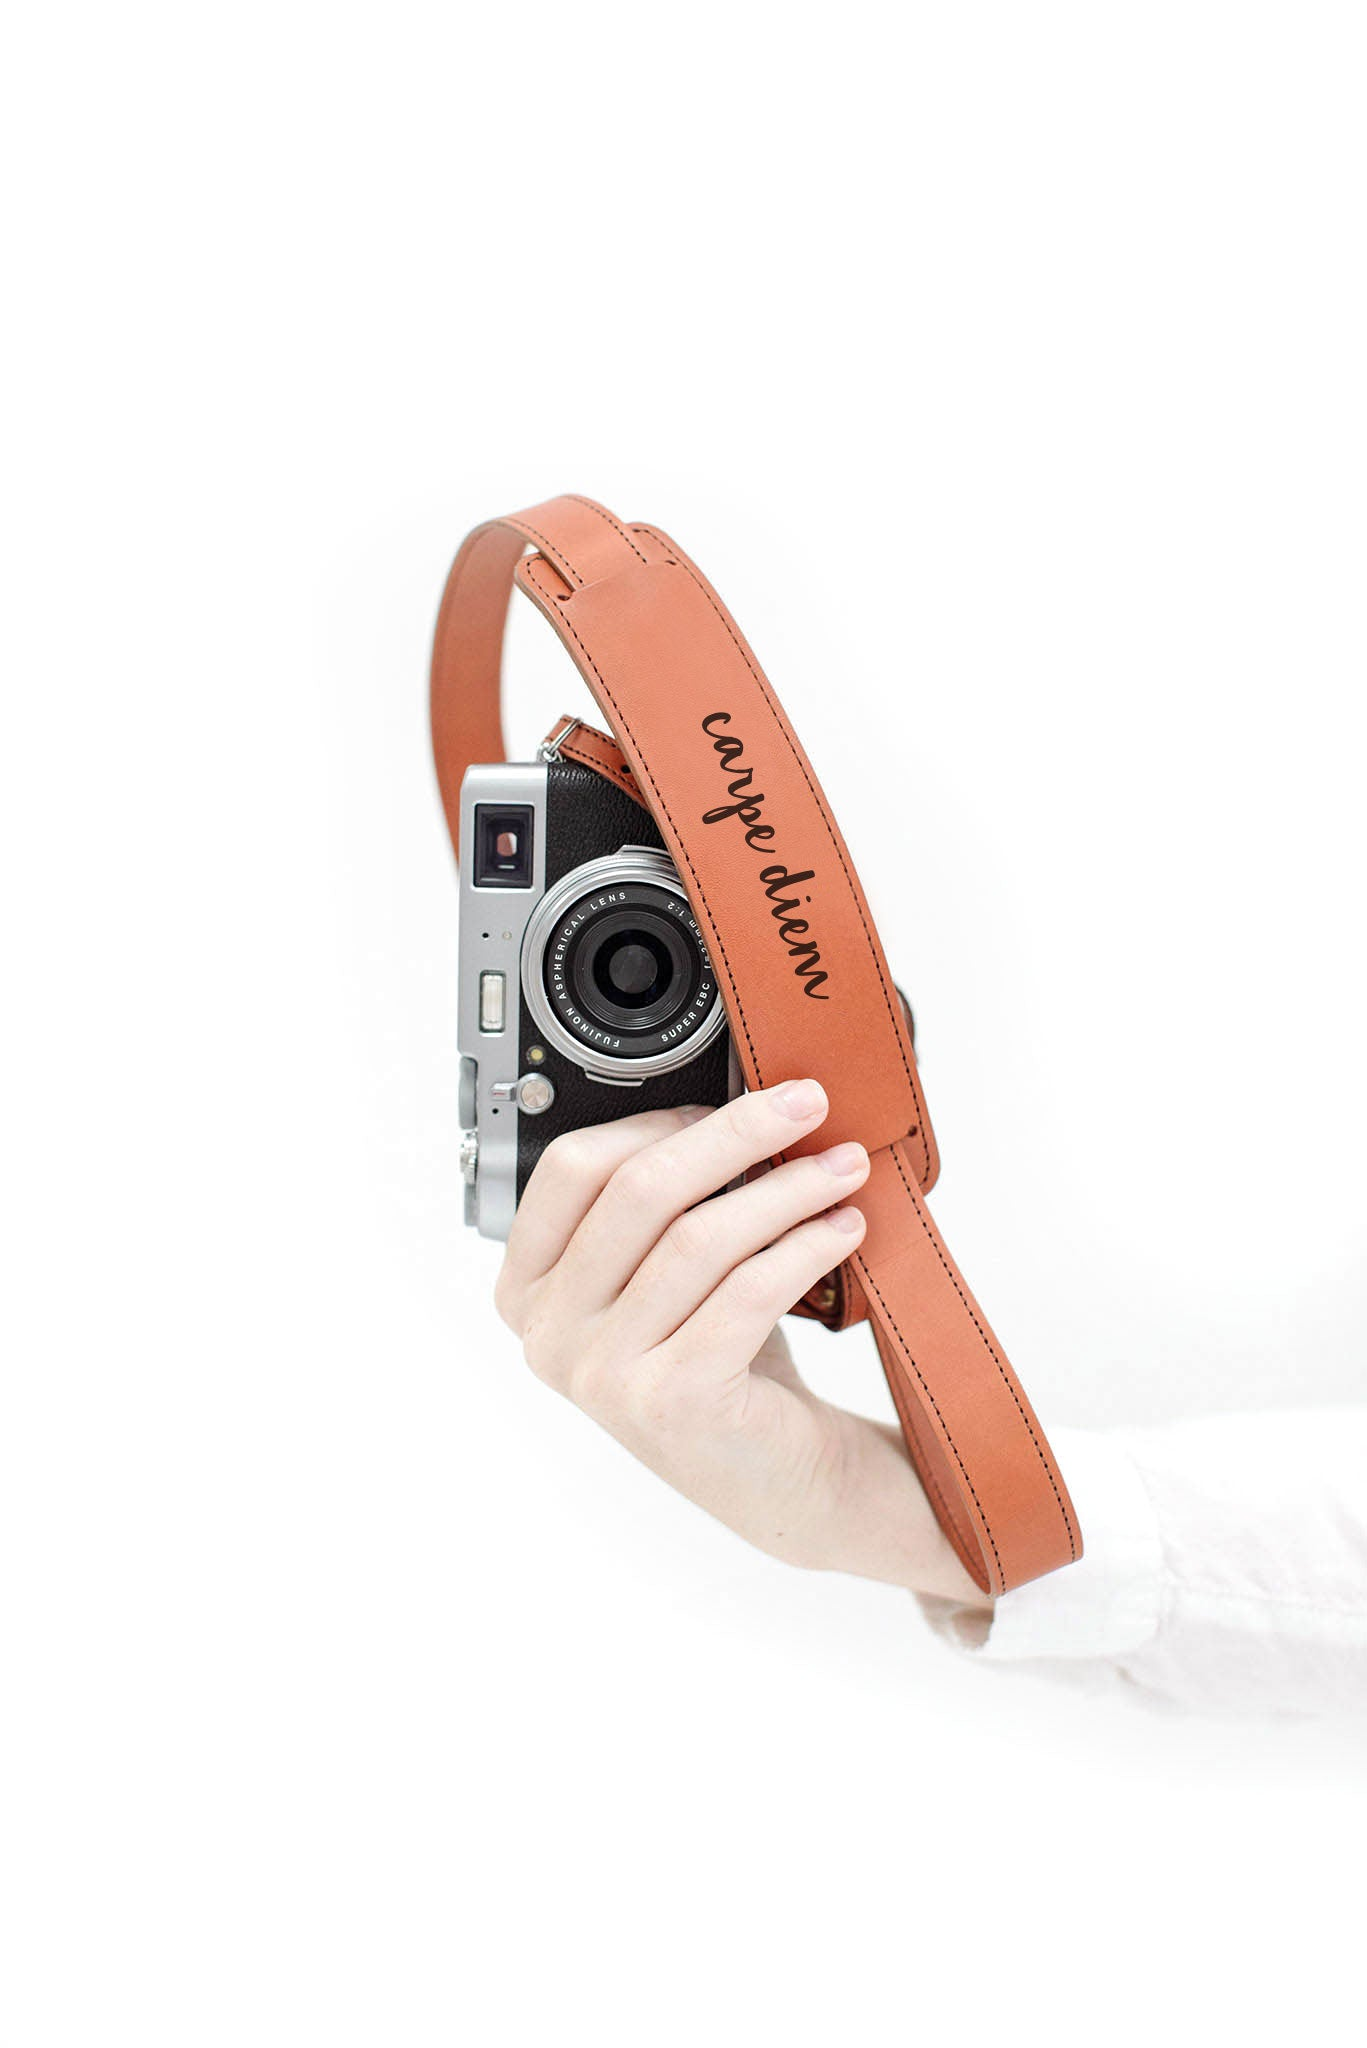 "FOTO | ""Carpe Diem"" Skinny Fotostrap - this genuine leather skinny camera strap is available in cognac and black leather, making it the perfect photographer gift!"